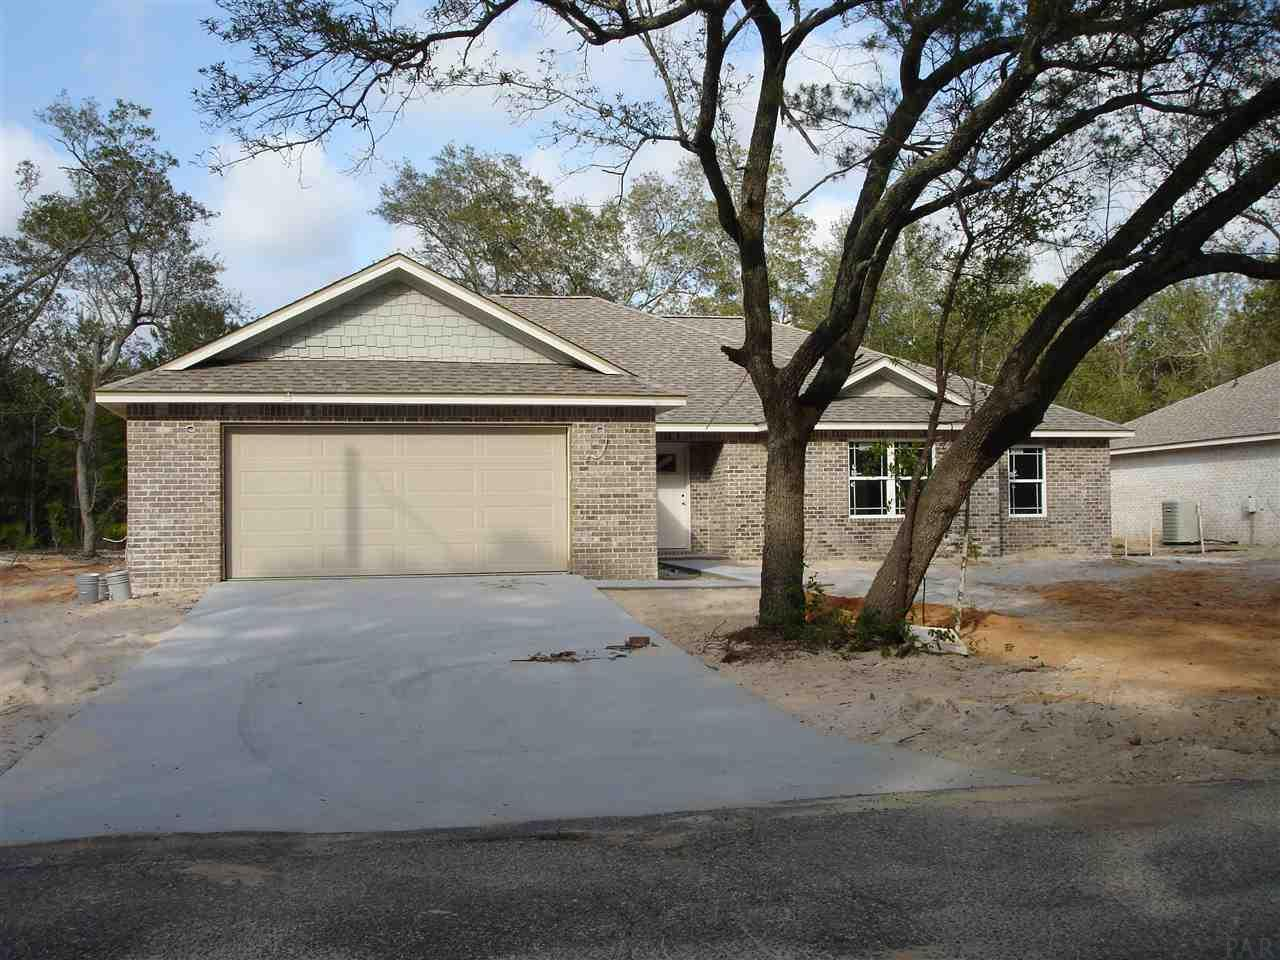 5931 Clay Cir, Gulf Breeze, FL 32563